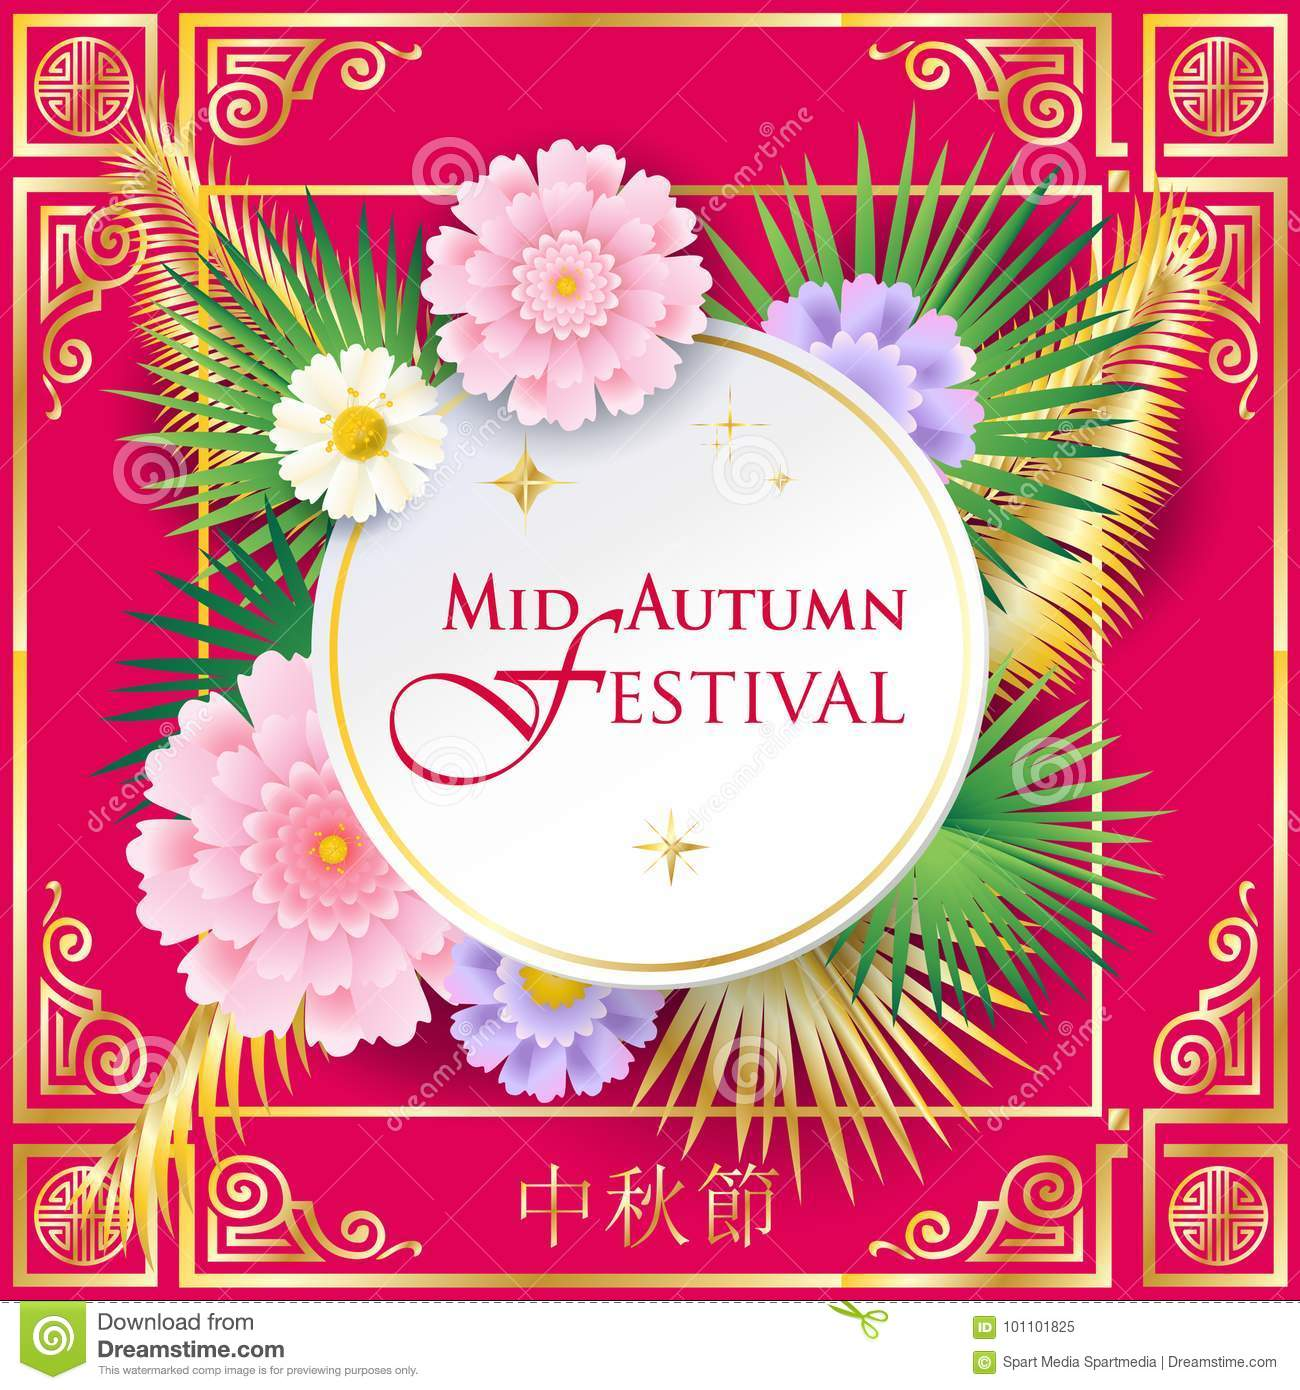 25+ Mid Autumn Festival 2020 Free Download Pictures